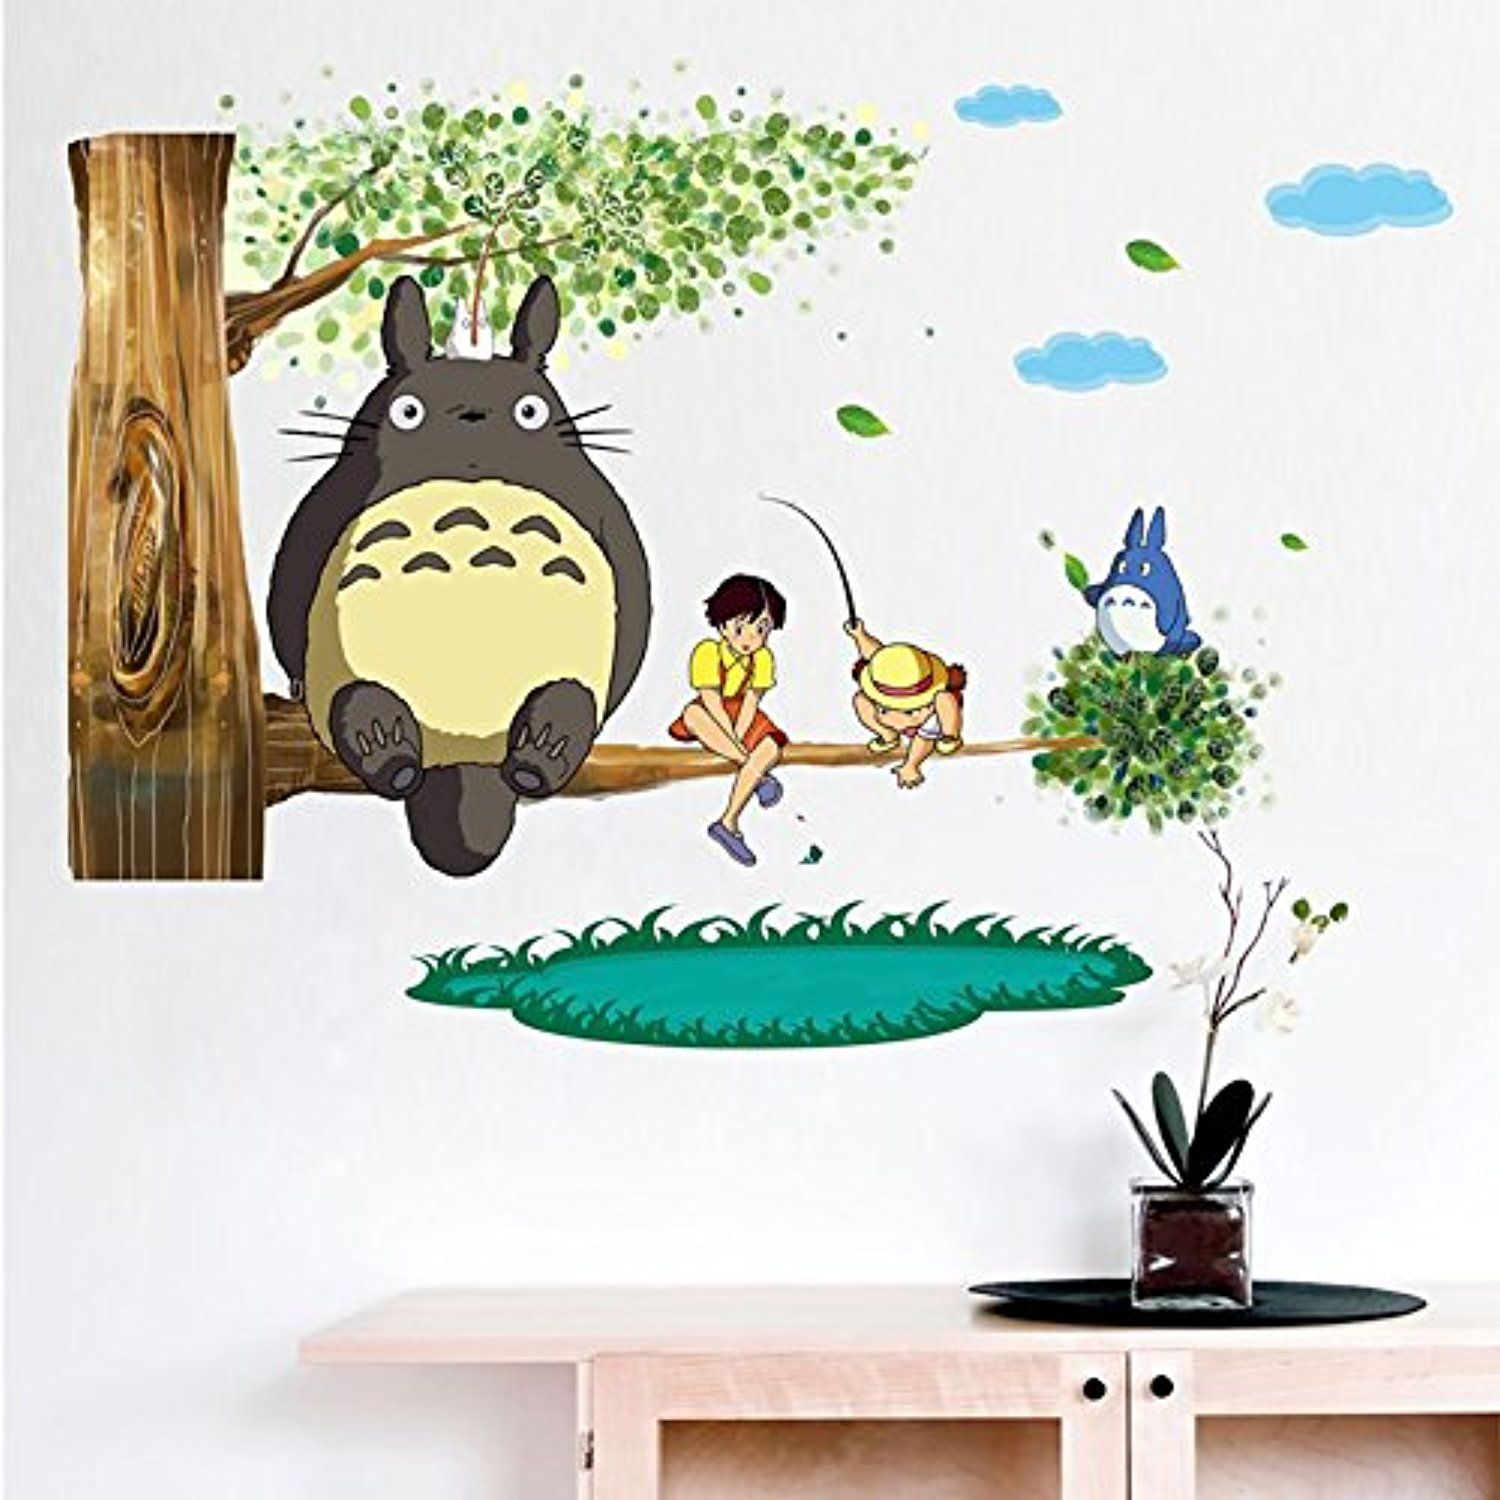 Déco Murale Diy My Neighbor Totoro Wall Decals Stickers By Jiquan Removable